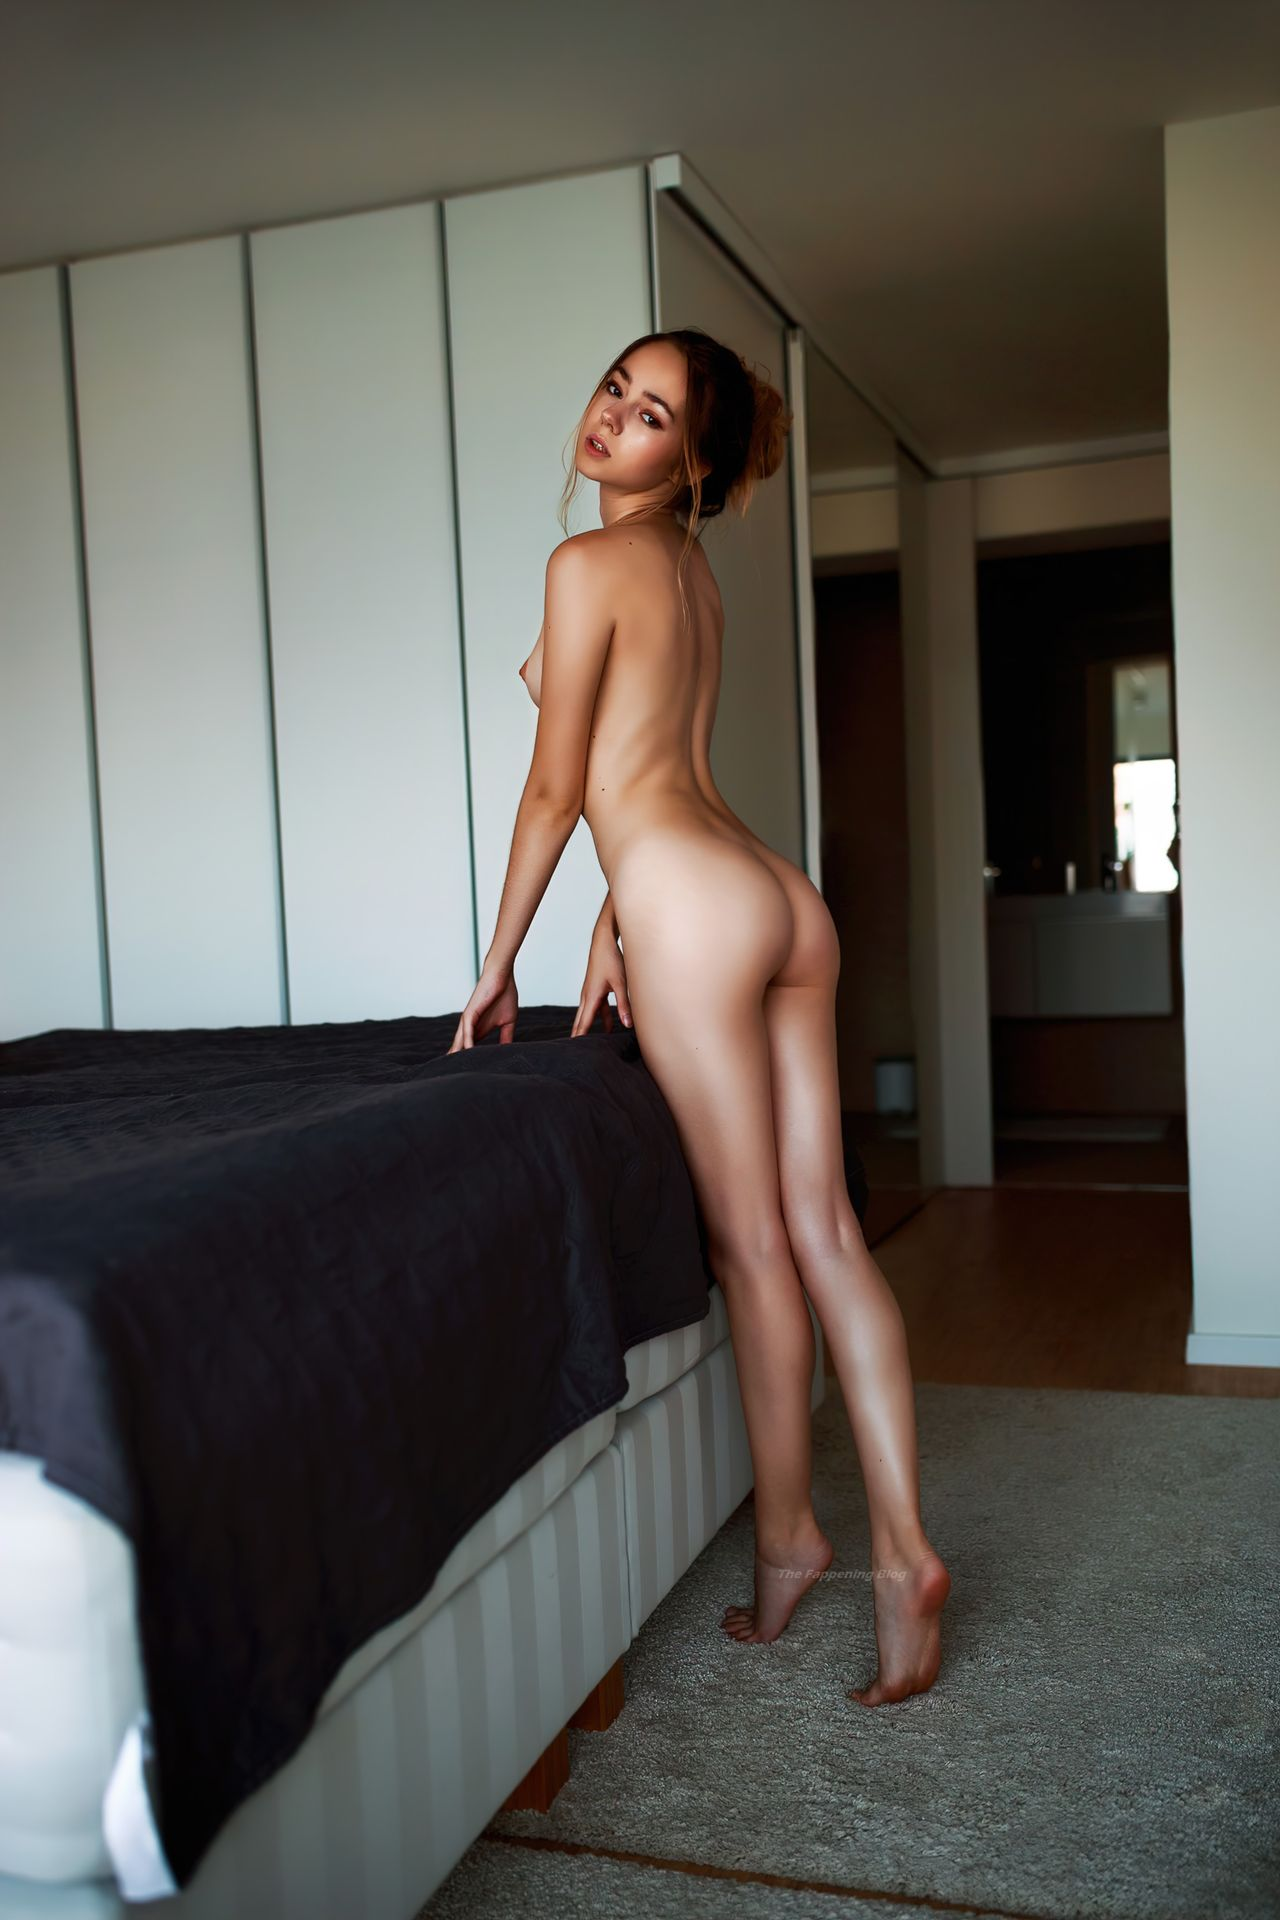 Nude fappening